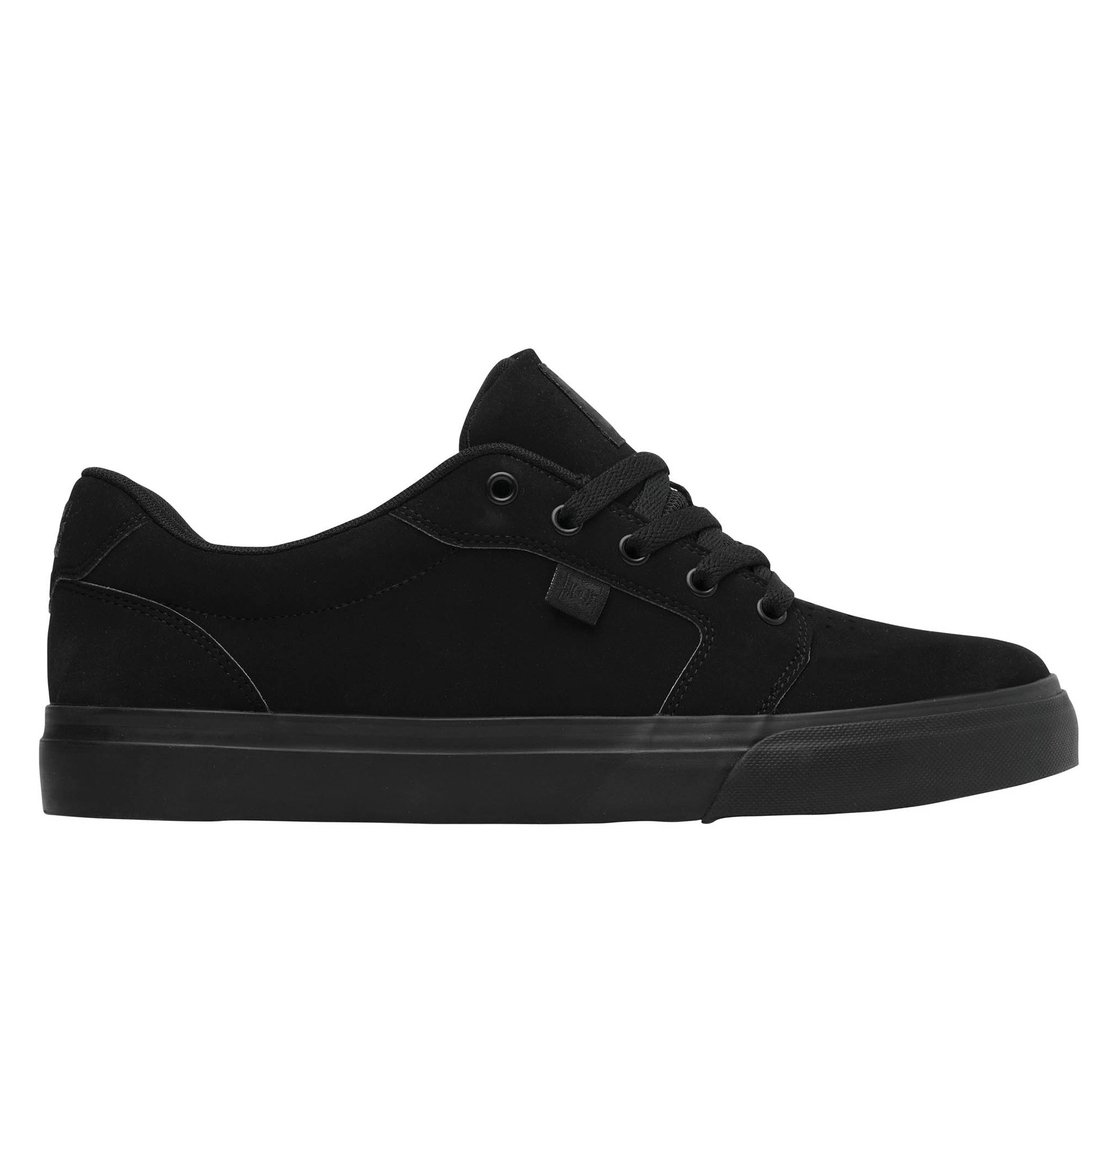 c67400d2750 1 Anvil Shoes Black 303190 DC Shoes